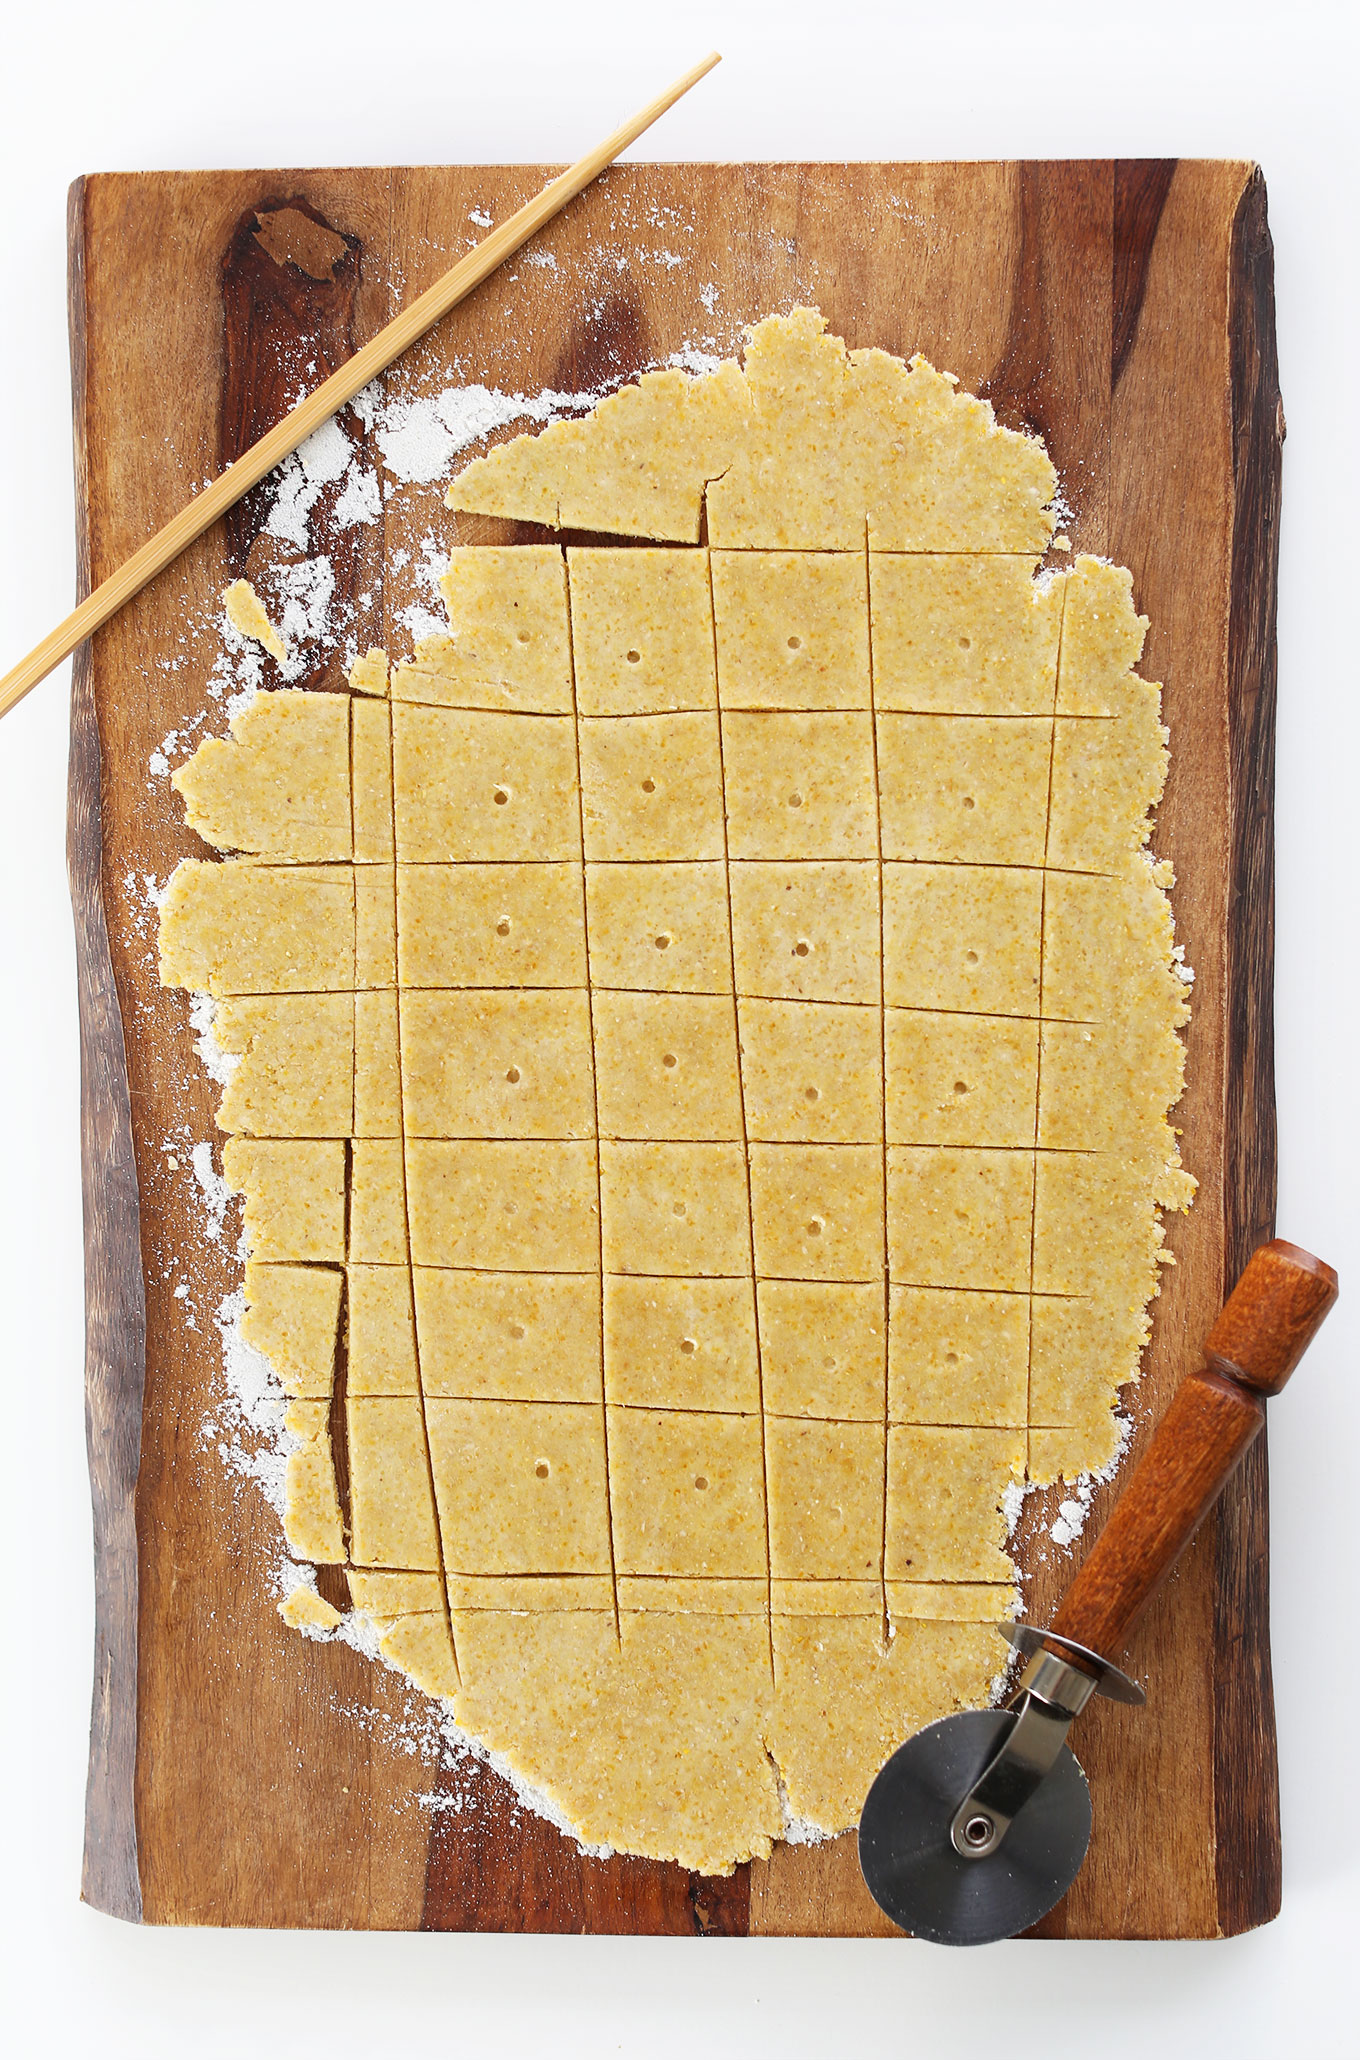 Using a pizza cutter and chopstick to make cuts and dots in our homemade Peanut Butter Cheese Crackers recipe